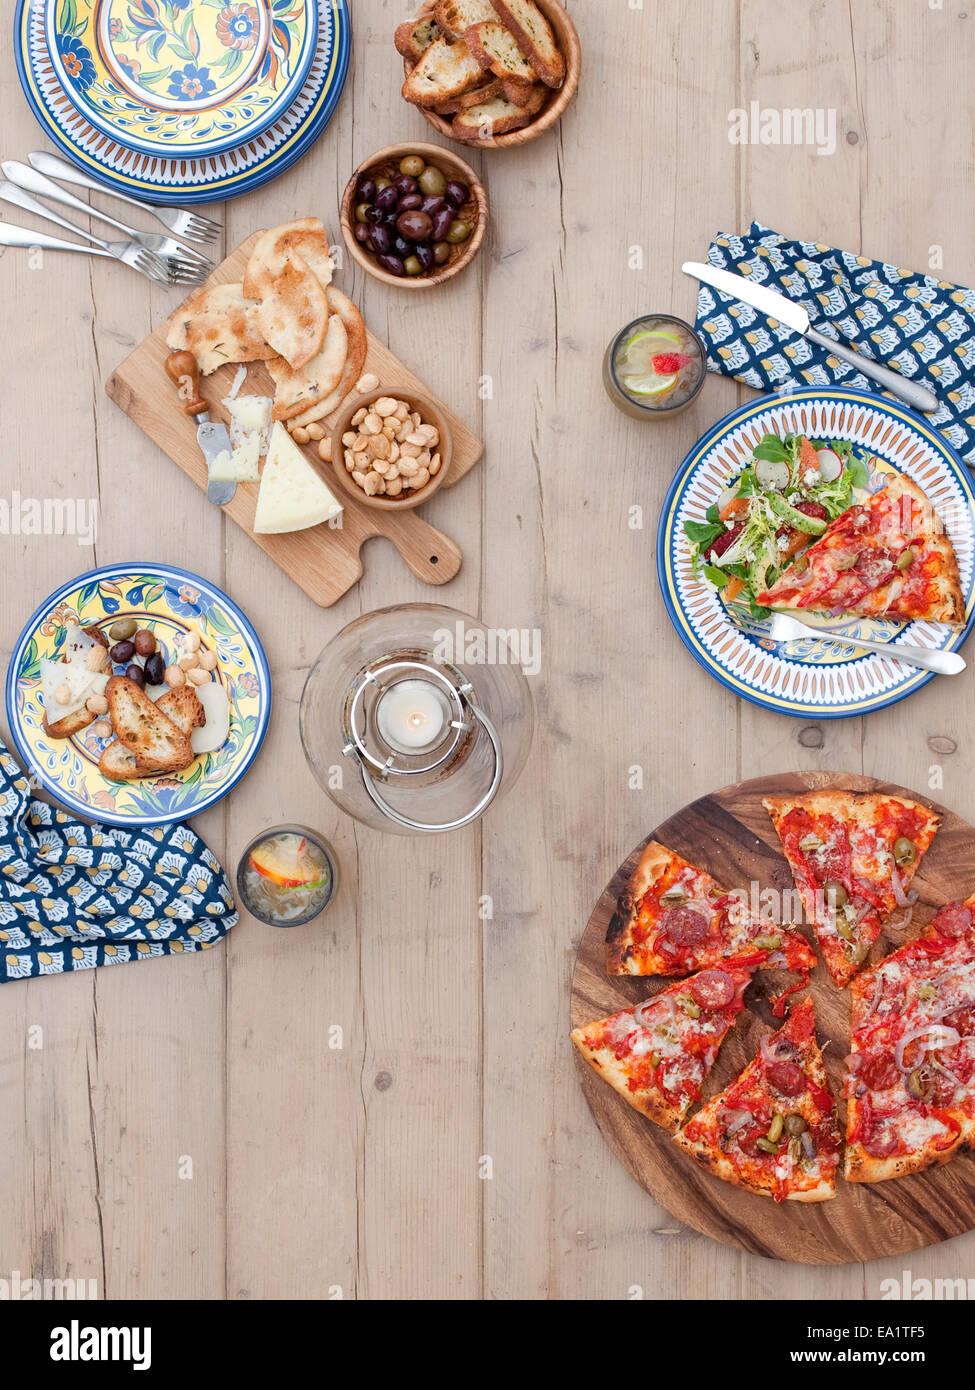 outdoor dining table set with pizza - Stock Image